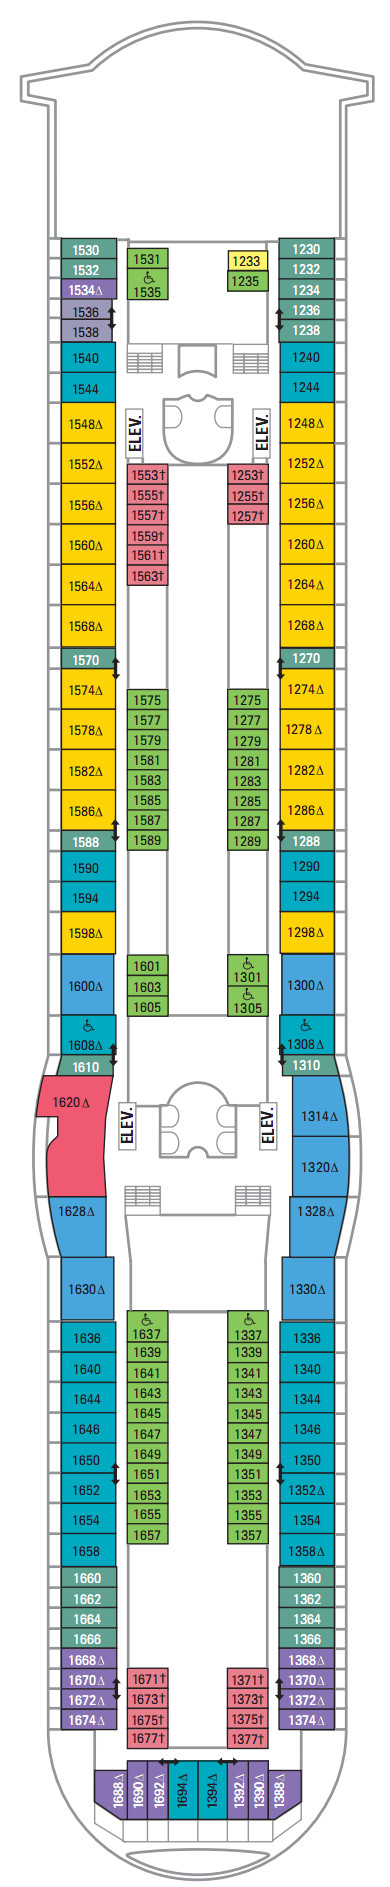 Navigator Of The Seas Deck 10 layout